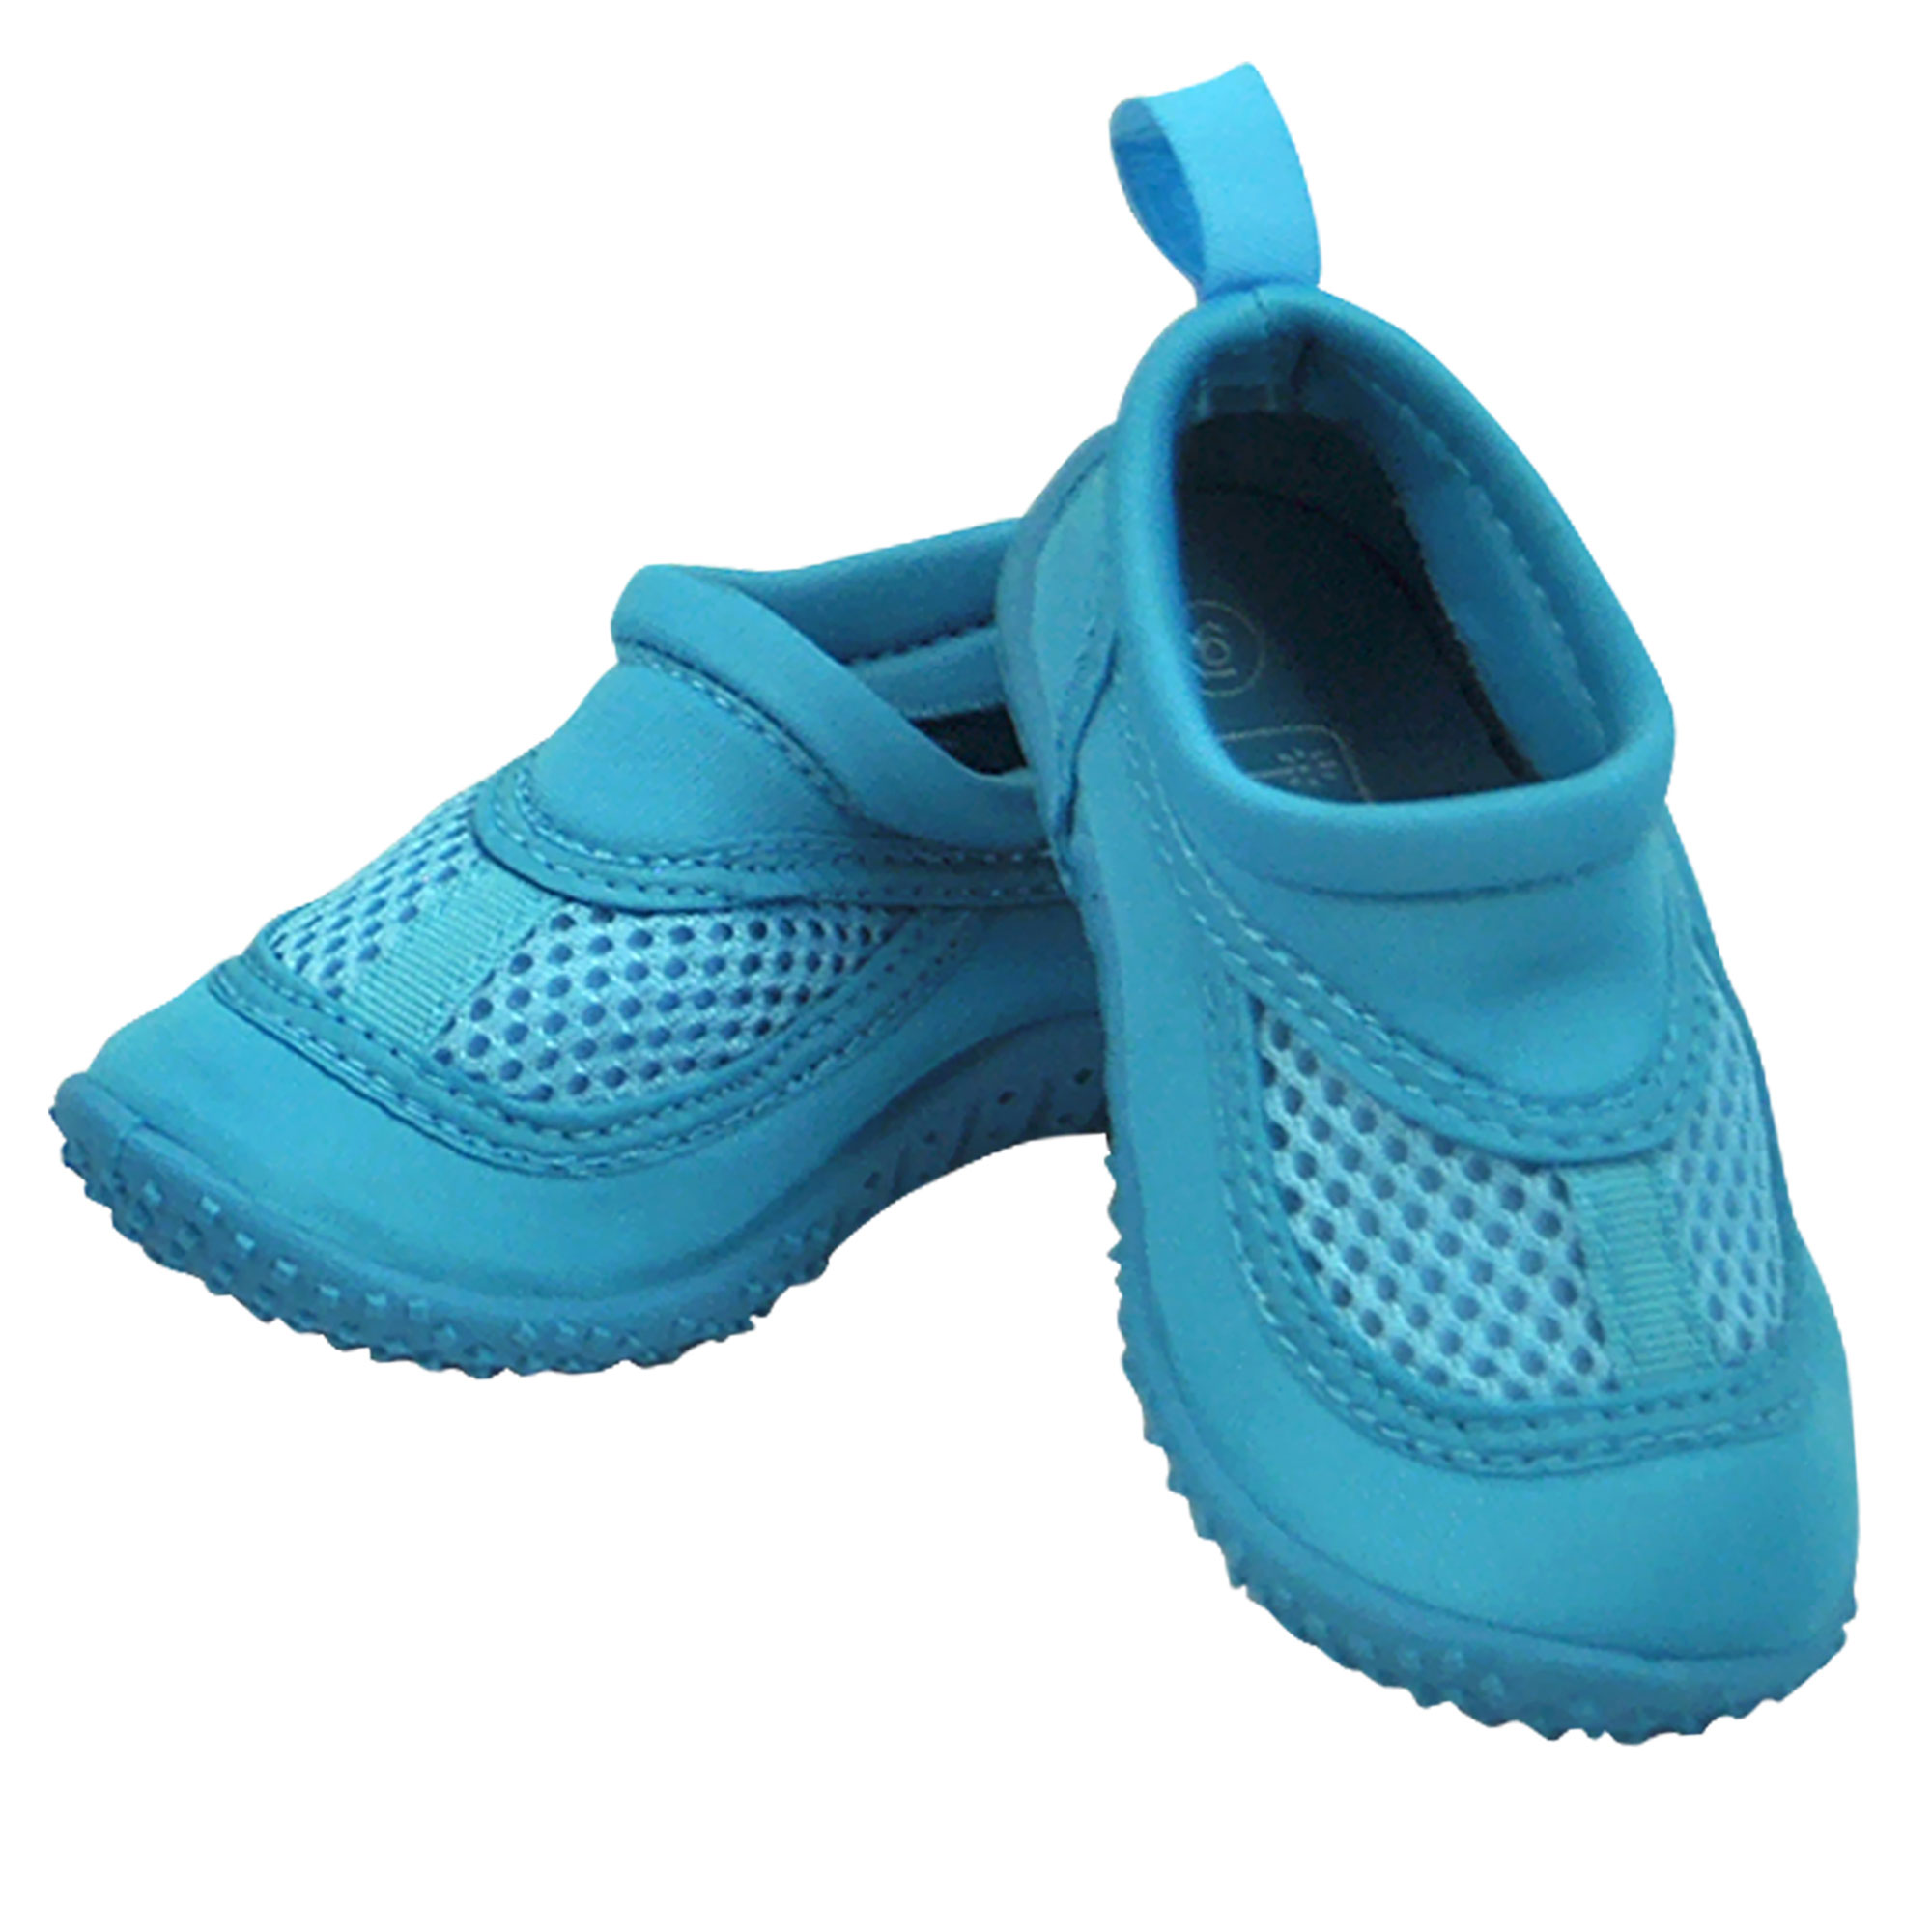 Iplay Unisex Boys or Girls Sand and Water Swim Shoes Kids Aqua Socks for Babies, Infants, Toddlers, and Children Aqua Blue Size 4 / Zapatos De Agua